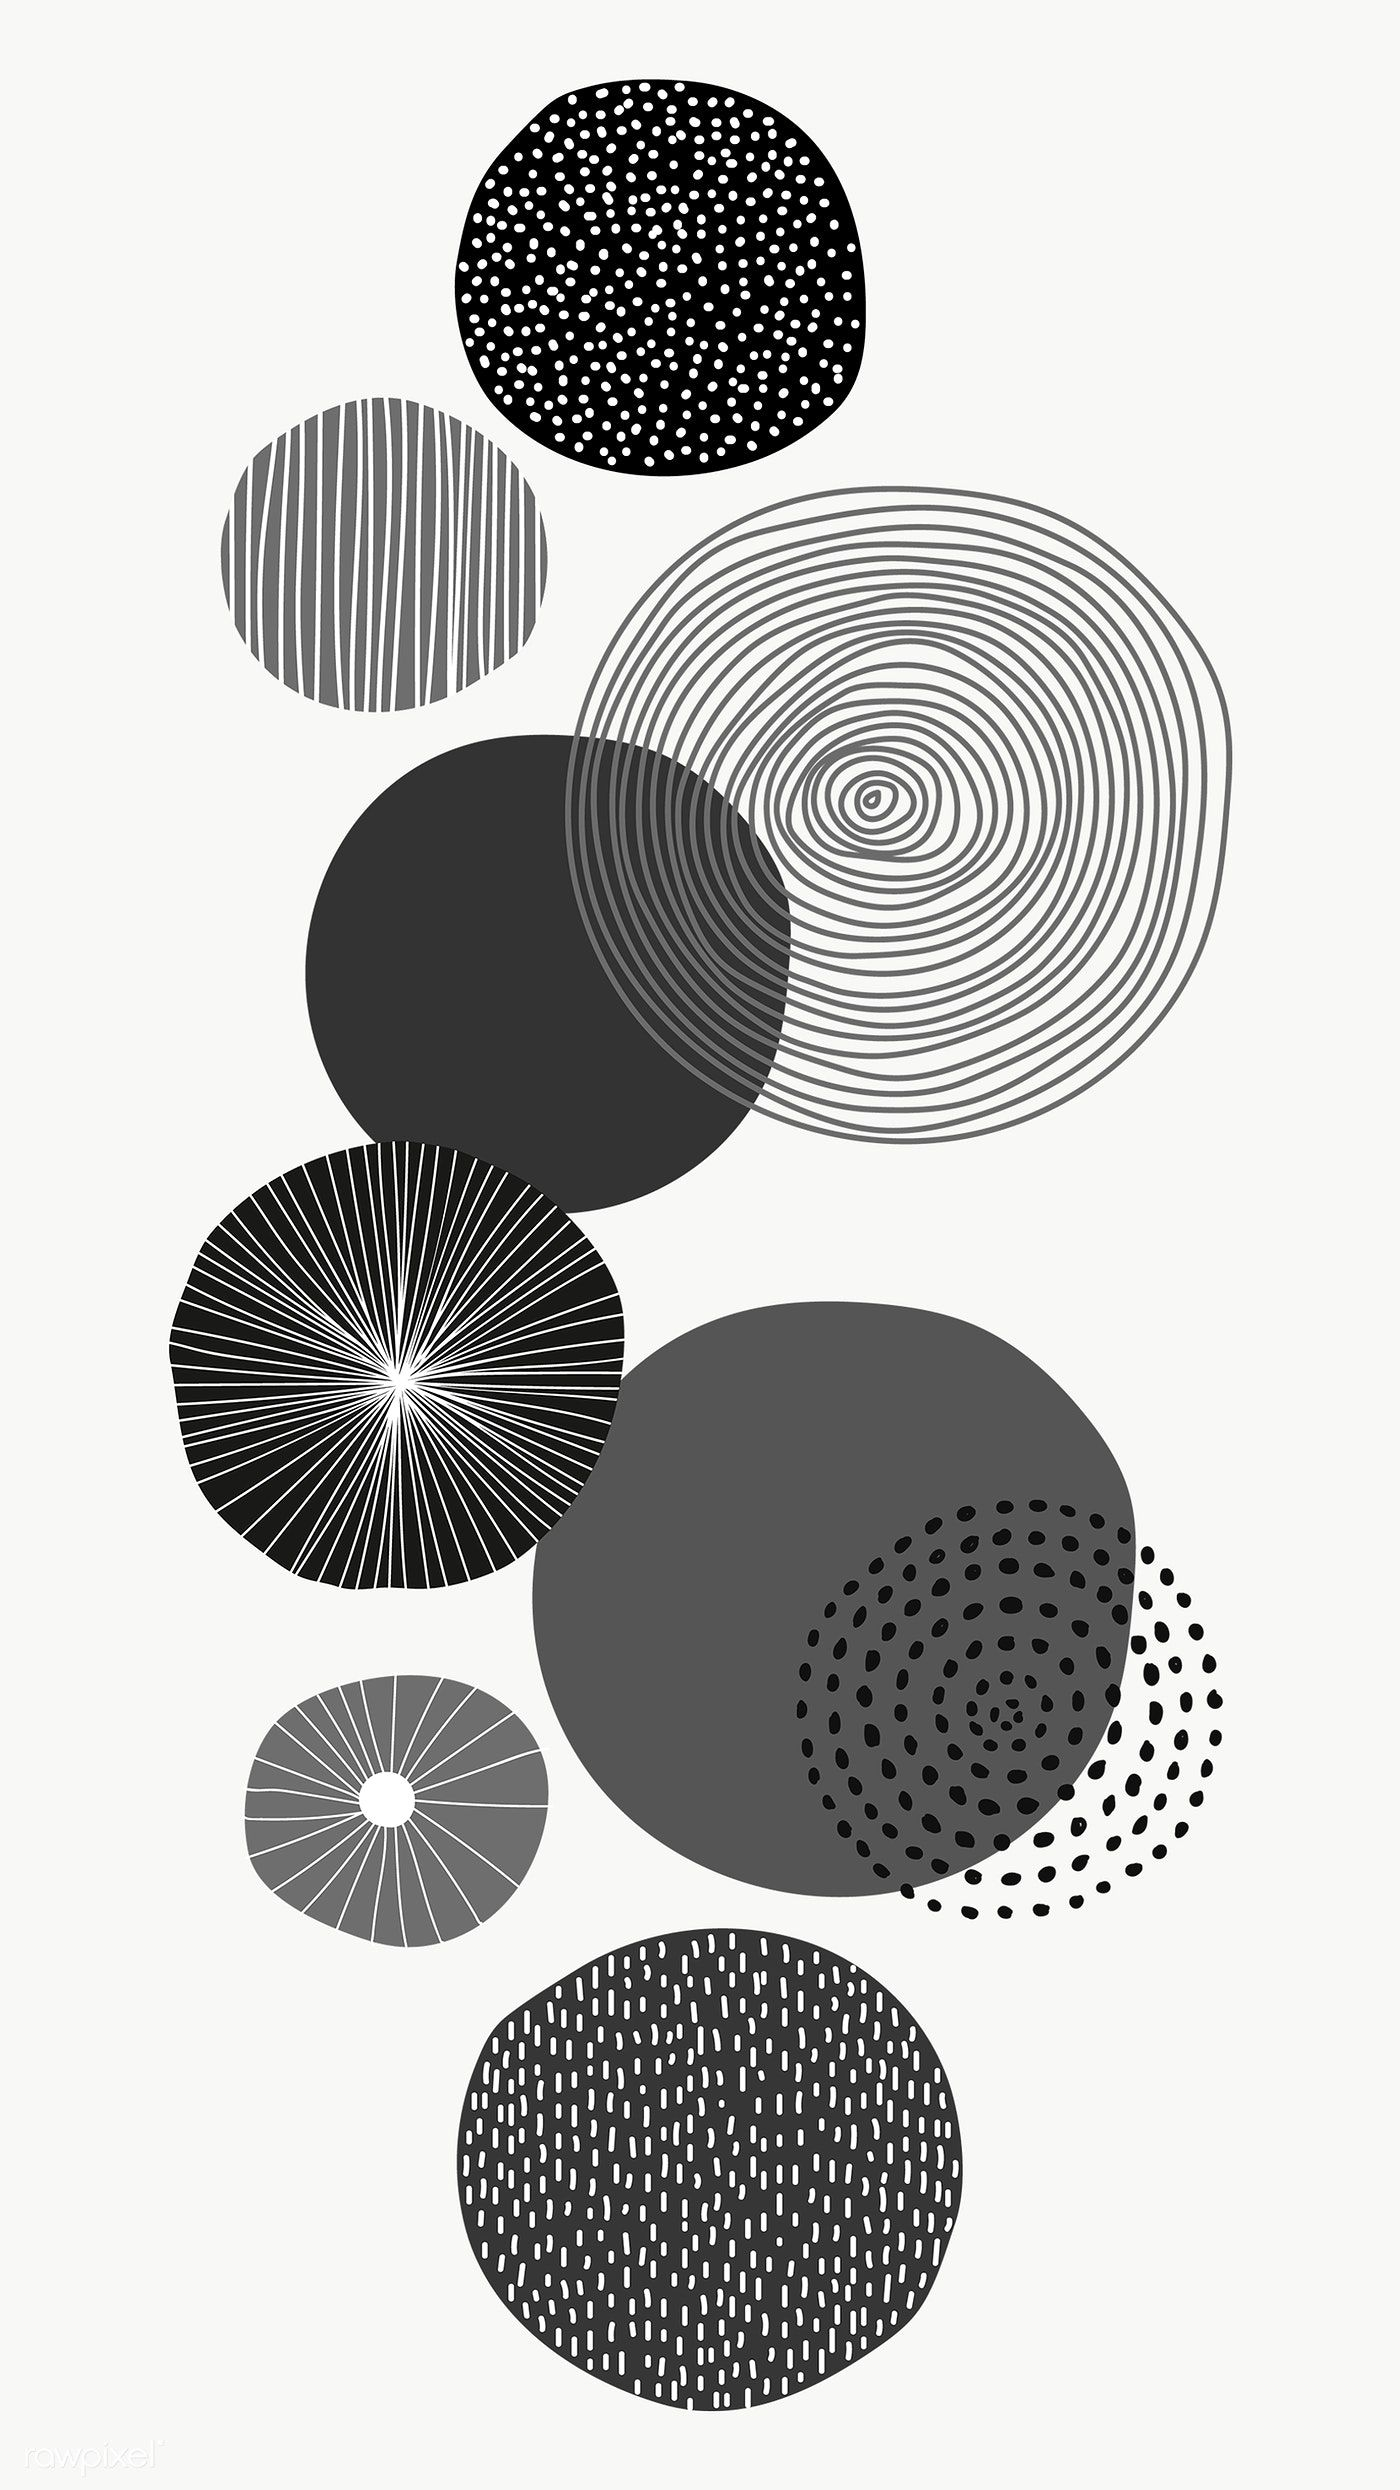 Download Premium Png Of Black Round Patterned Print Transparent Png Remix In 2020 Background Patterns Wall Art Prints Black And White Wallpaper